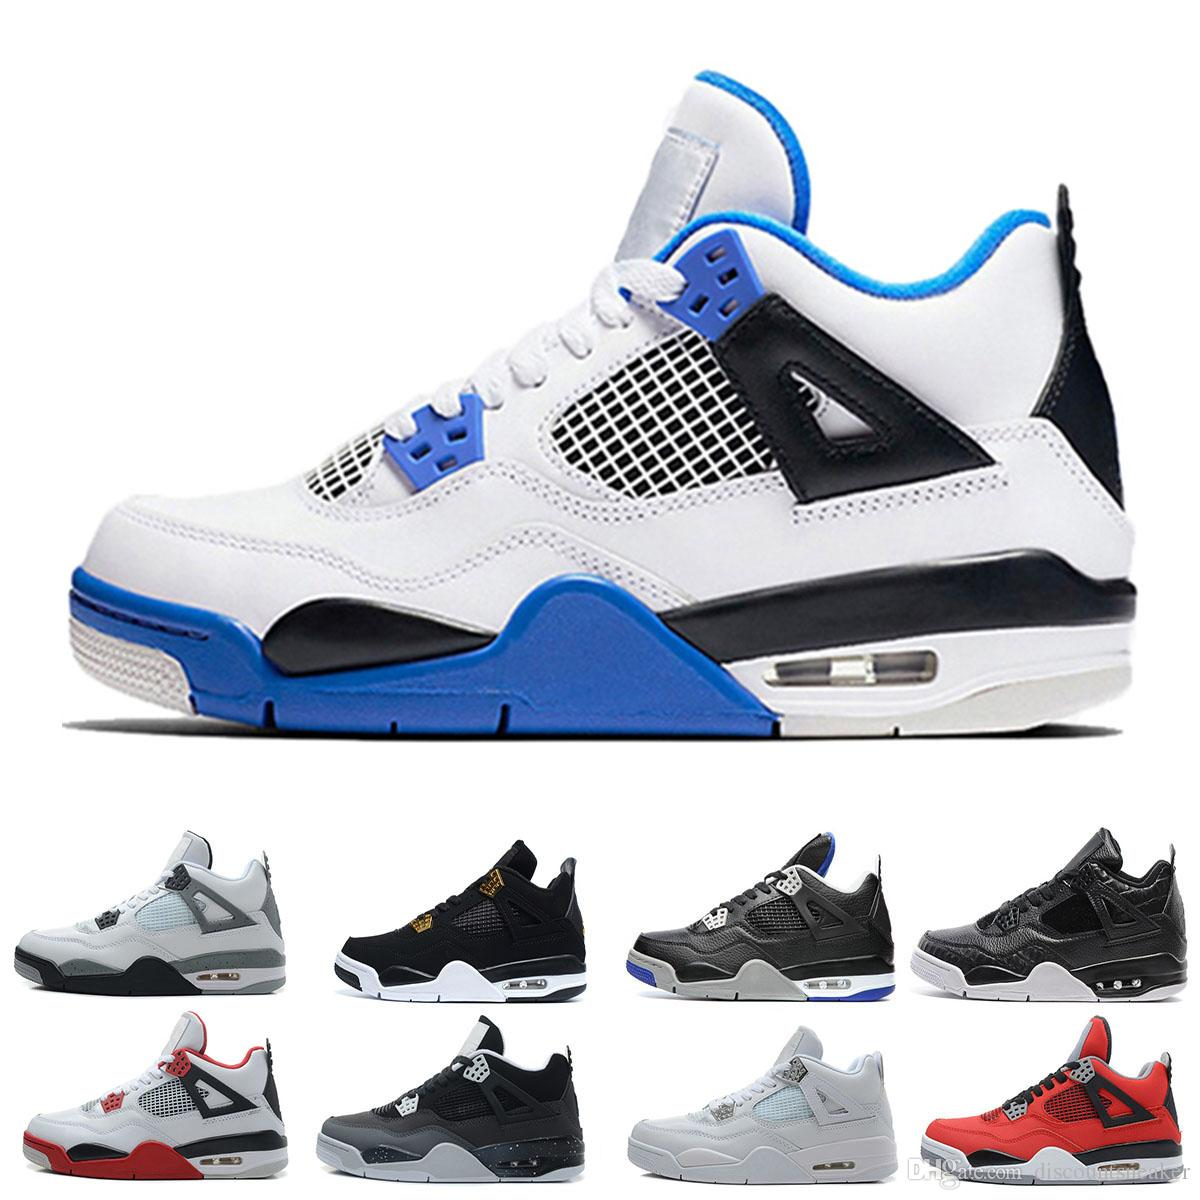 9105488b9a2a8a High Quality 4 Man Basketball Shoes 4s Pure Money Premium Black Cat White Cement  Royalty Fire Red Fear Angry Bull Sports Shoes Sneaker Latest Shoes Shoes ...